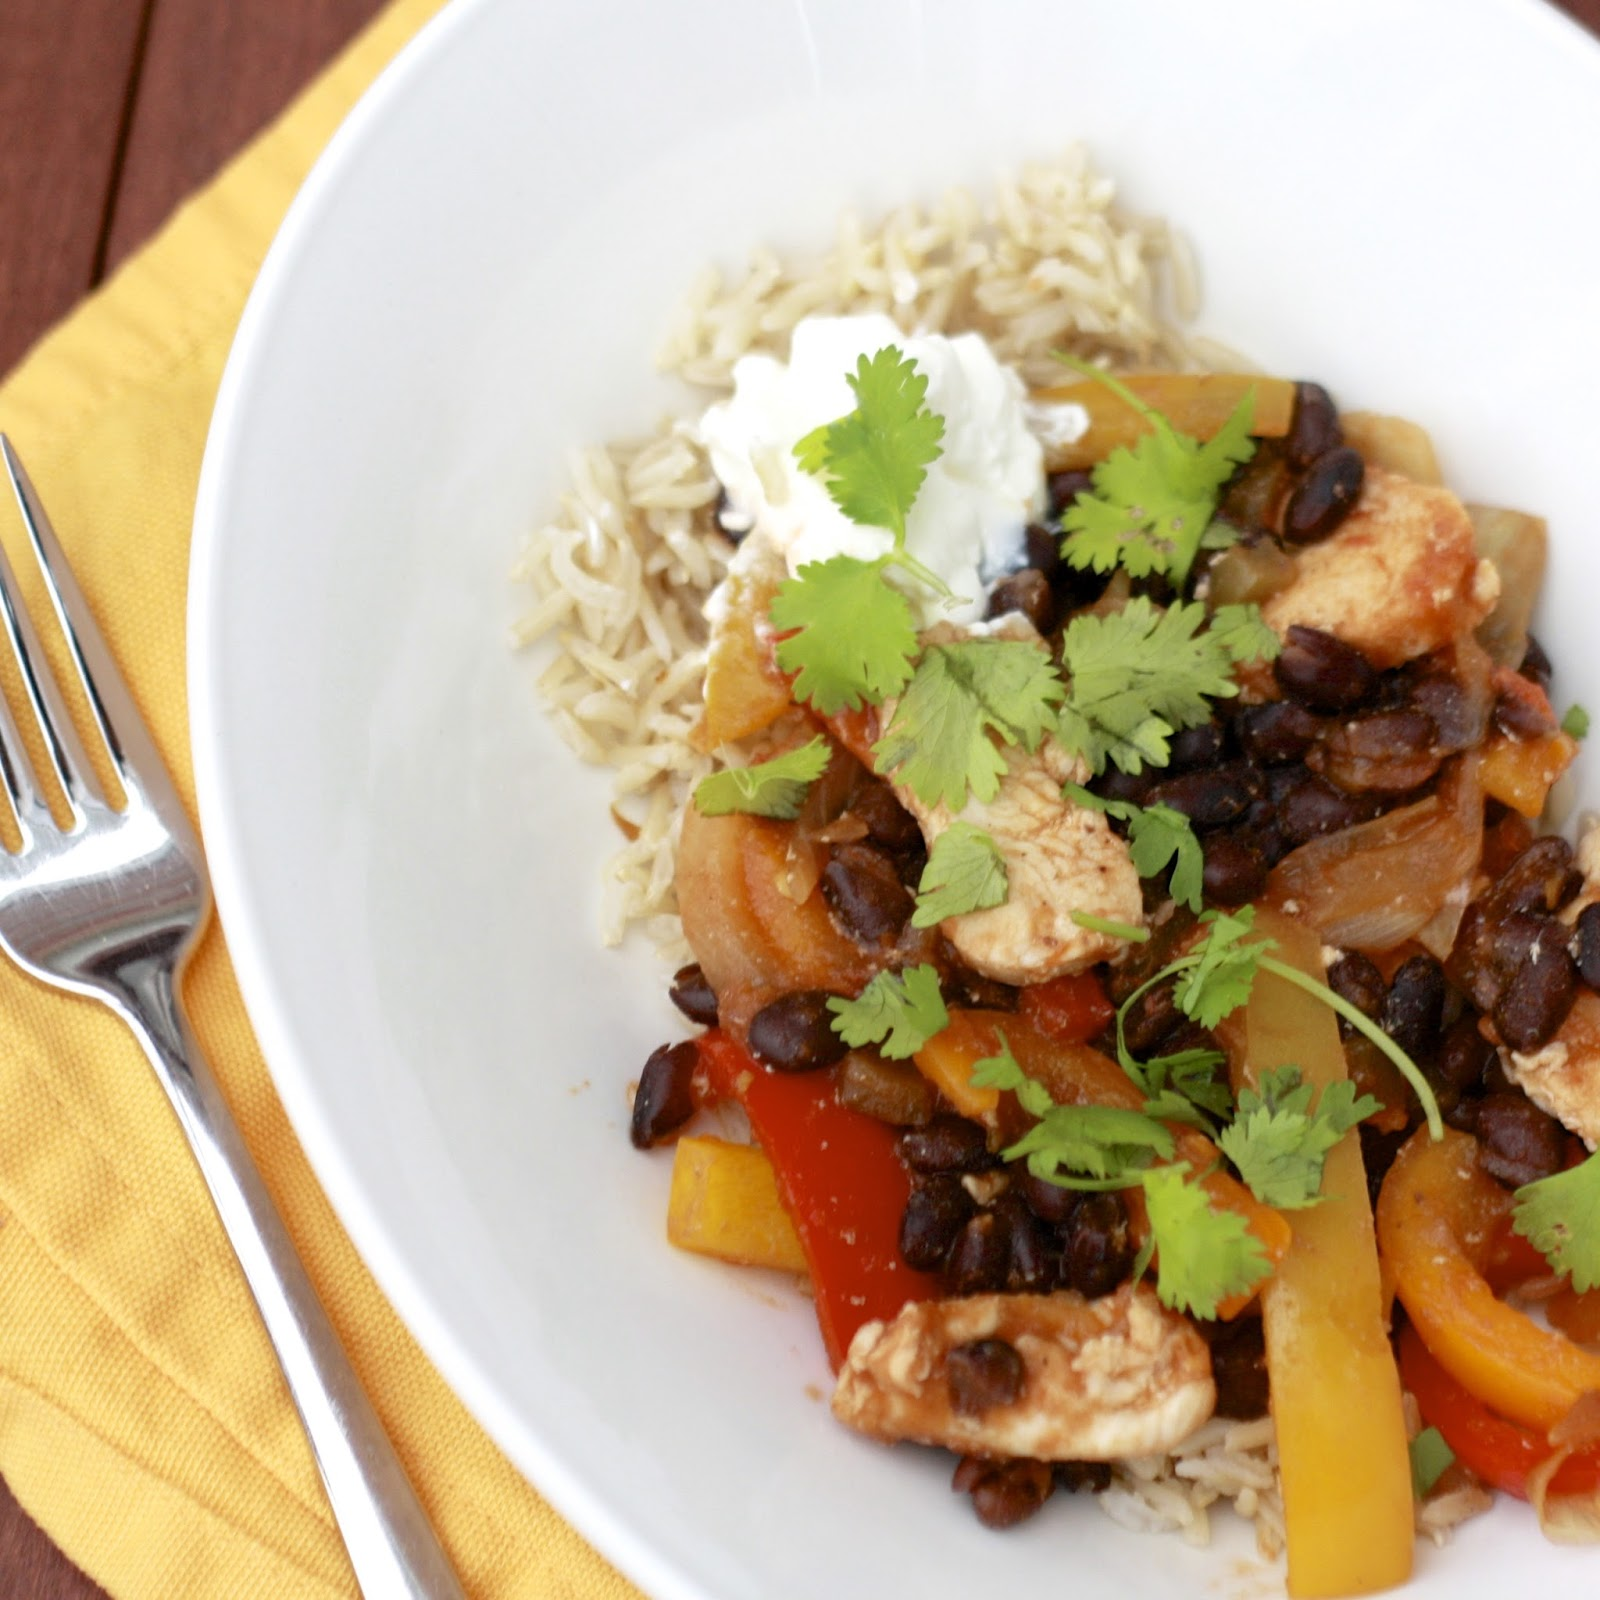 Chicken and Black Bean Fajita Stir Fry | The Sweets Life